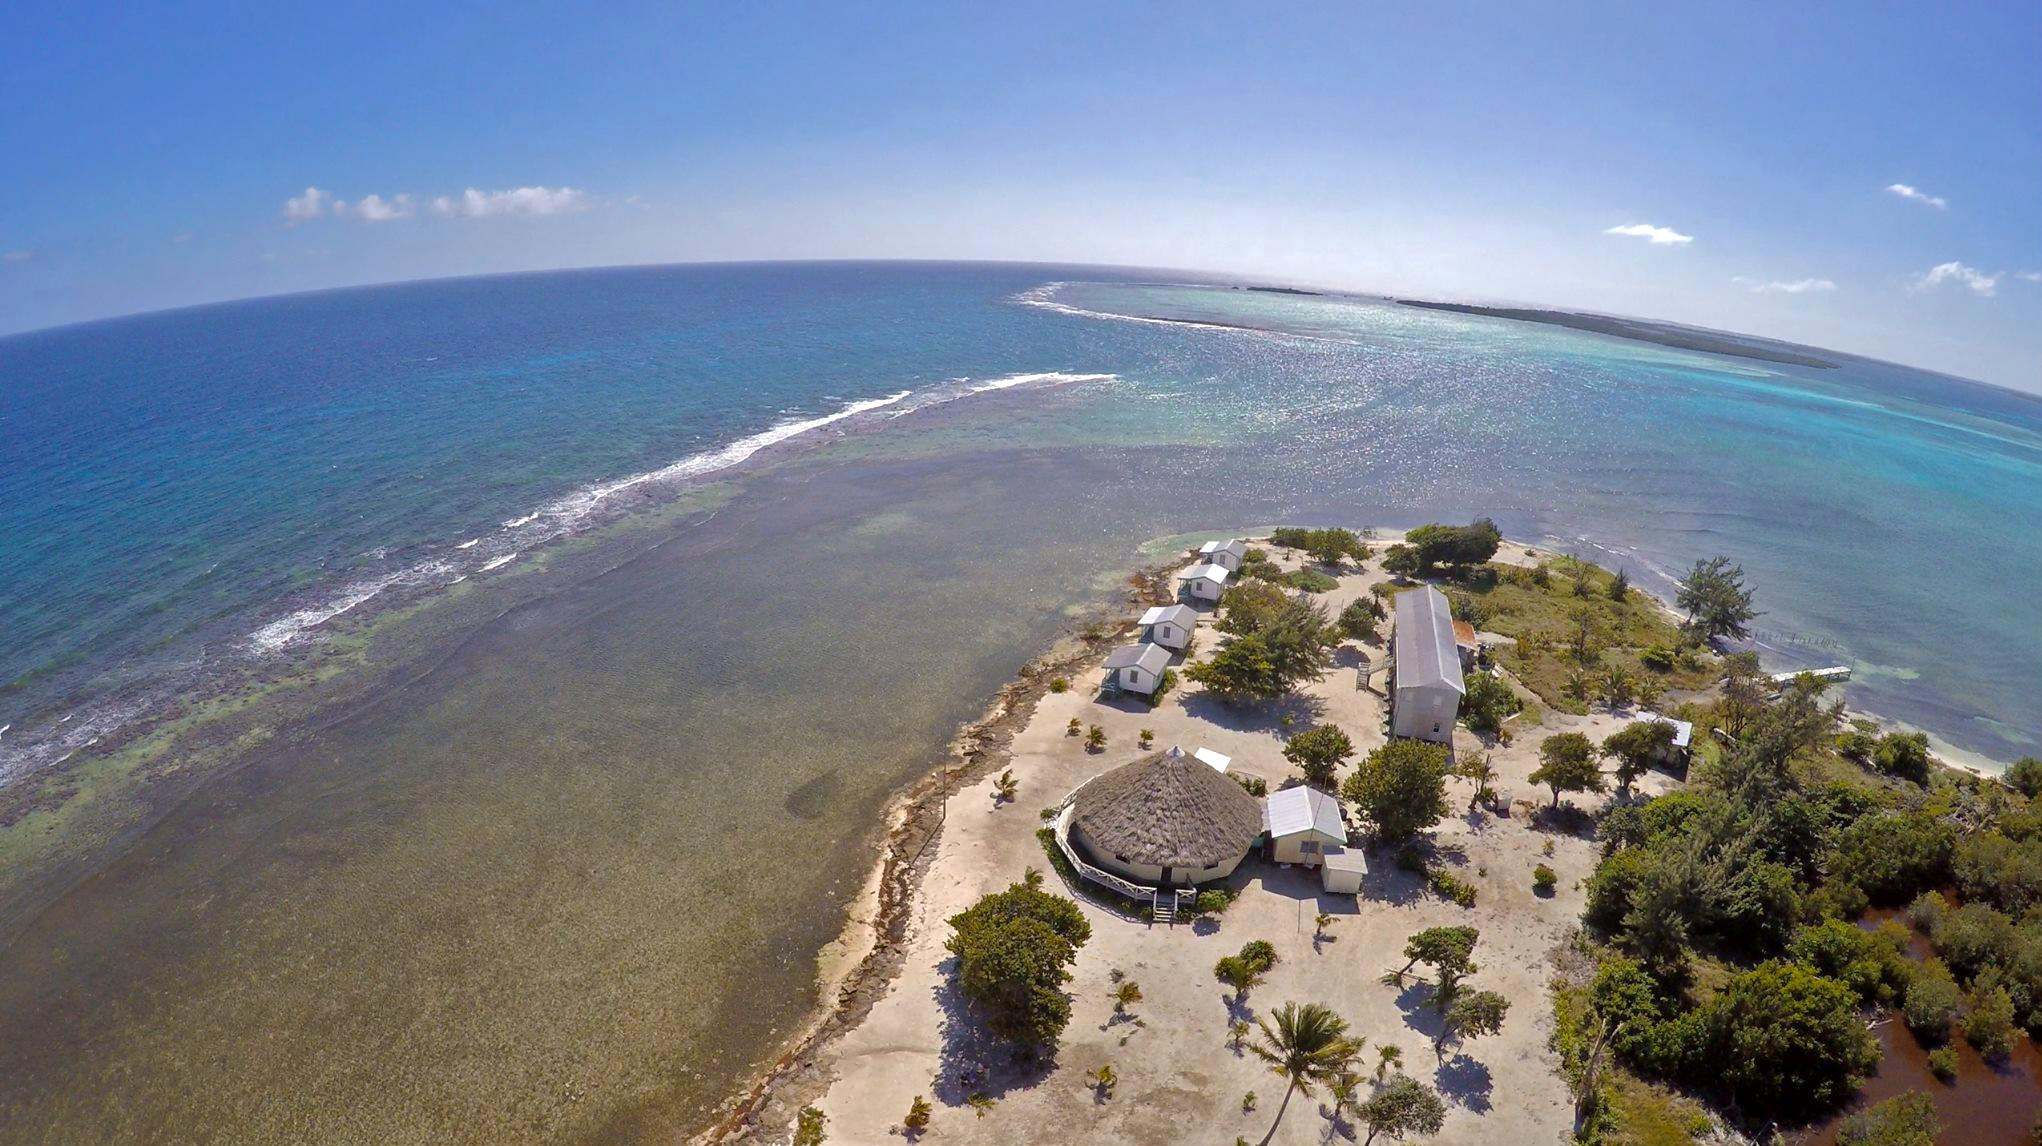 An aerial view of the field station captured by quadcopter drone. © Eric Ramos